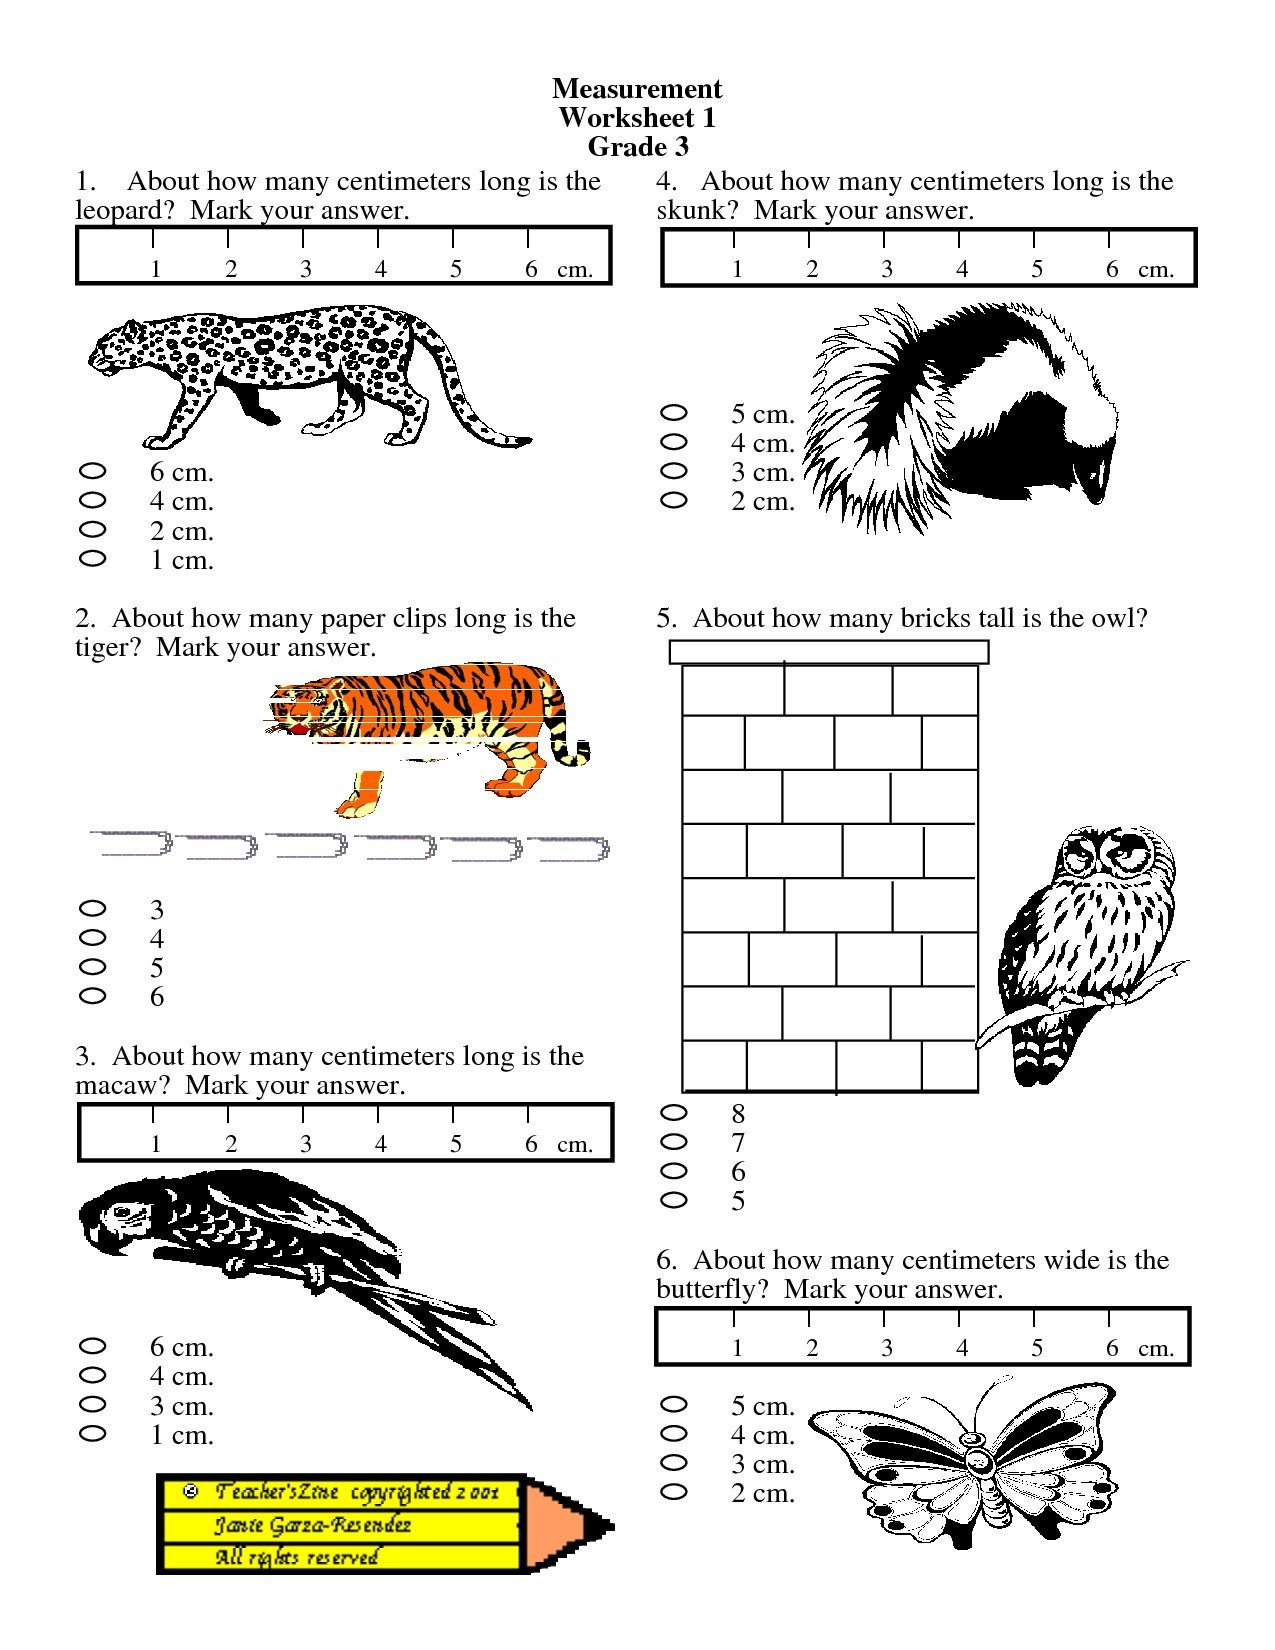 Measurement Worksheets Grade 3 Math Worksheet Tremendous Measurement Worksheets Grade 3